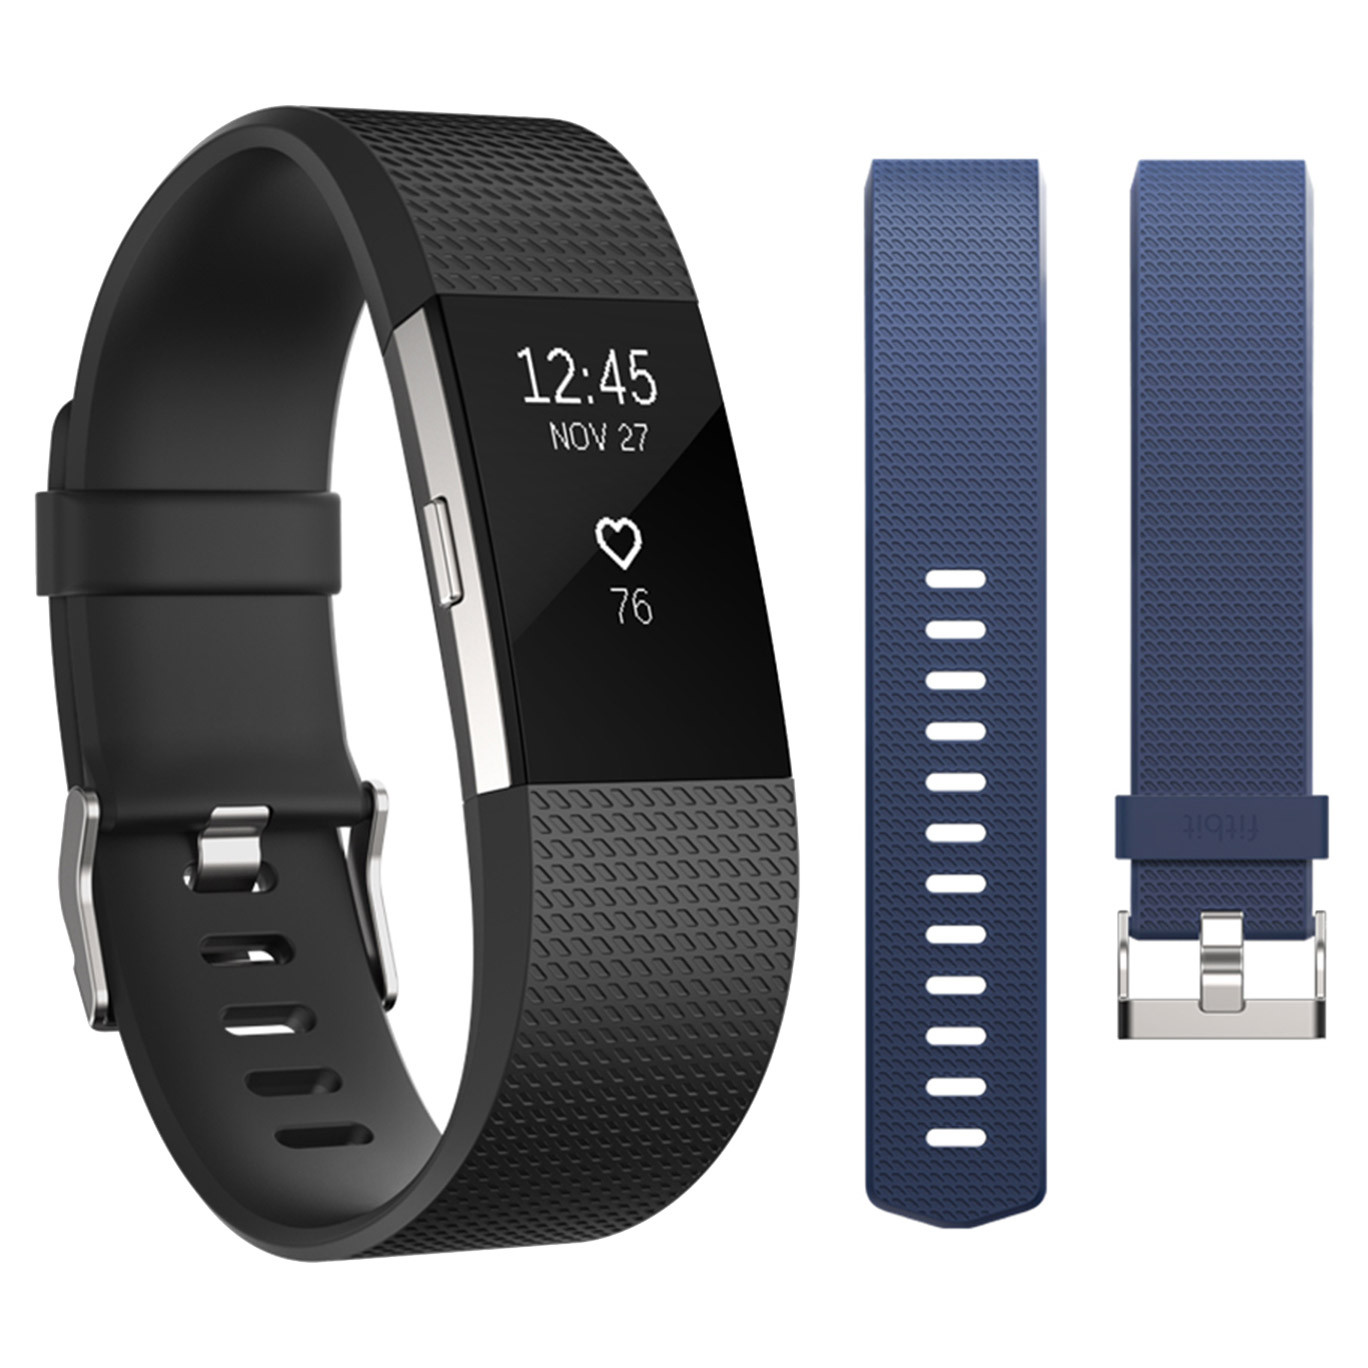 Fitbit Charge 2 Activity Tracker Bundle - Large